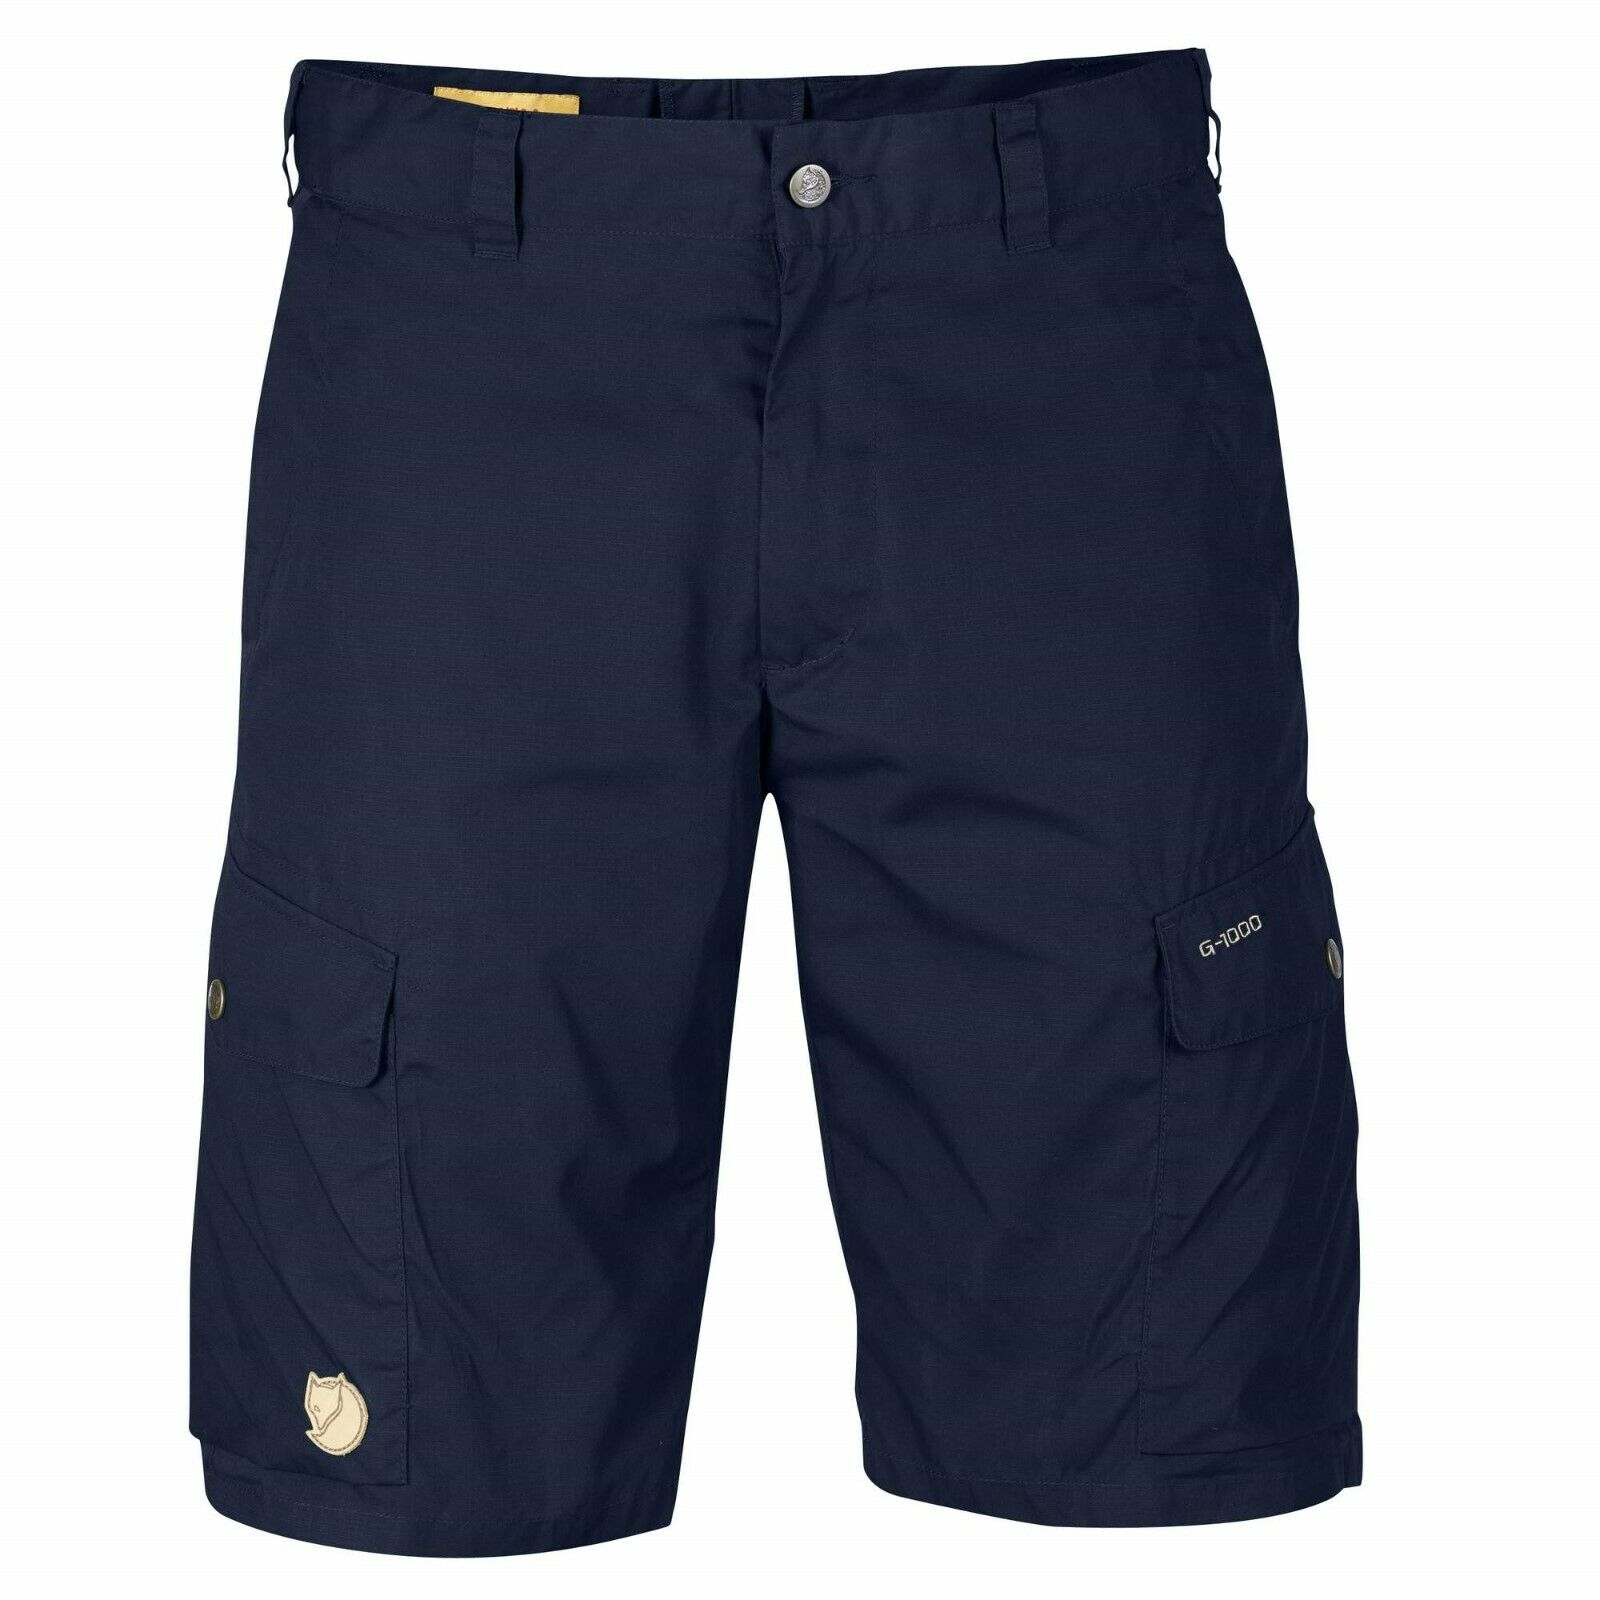 Fjäll Räven Ruaha Men's Shorts Dark Navy Men's Shorts from G1000 Light